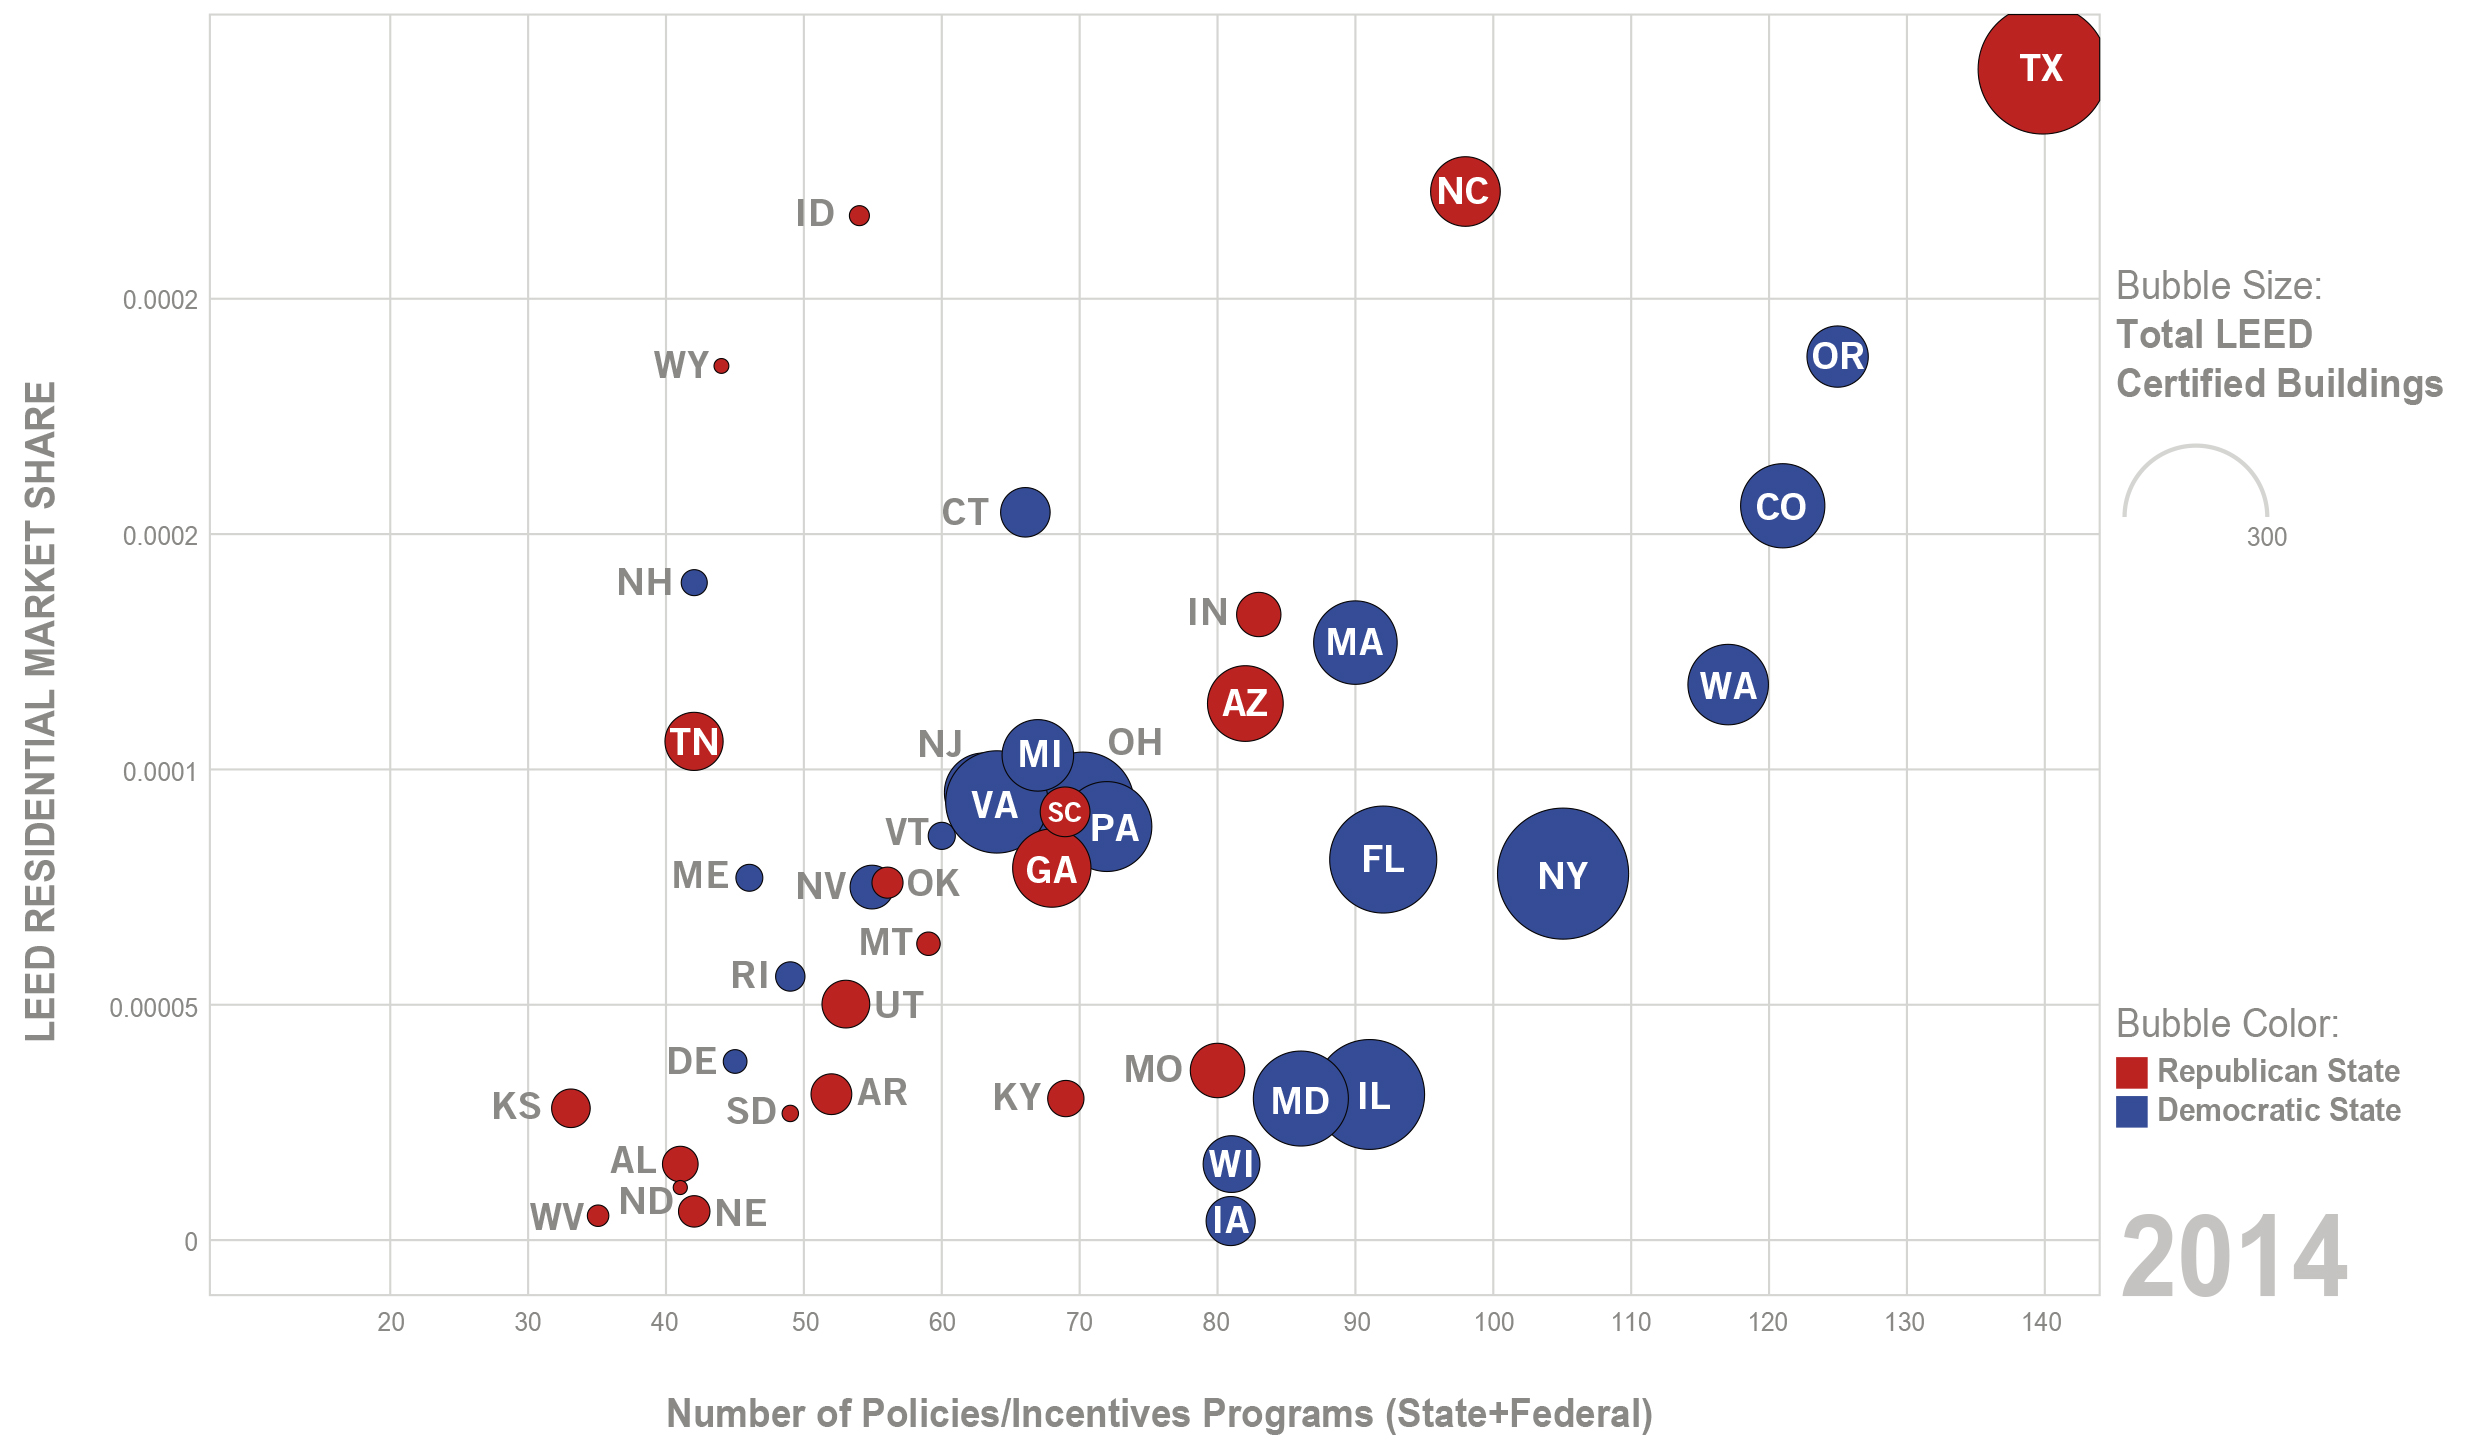 """Policies/incentives and political map chart for LEED residential market share in the US.                       Normal   0           false   false   false     EN-US   X-NONE   AR-SA                                                                                                                                                                                                                                                                                                                                                                                                                                                                                                                                                                                                                                                                                                                                                                                                                                                                                     /* Style Definitions */ table.MsoNormalTable {mso-style-name:""""Table Normal""""; mso-tstyle-rowband-size:0; mso-tstyle-colband-size:0; mso-style-noshow:yes; mso-style-priority:99; mso-style-parent:""""""""; mso-padding-alt:0in 5.4pt 0in 5.4pt; mso-para-margin-top:0in; mso-para-margin-right:0in; mso-para-margin-bottom:8.0pt; mso-para-margin-left:0in; line-height:107%; mso-pagination:widow-orphan; font-size:11.0pt; font-family:""""Calibri"""",sans-serif; mso-ascii-font-family:Calibri; mso-ascii-theme-font:minor-latin; mso-hansi-font-family:Calibri; mso-hansi-theme-font:minor-latin;}       (Rakha, T., Moss T.W. and Shin, D., 2018. """"A decade analysis of residential LEED buildings market share in the United States: Trends for transitioning sustainable societies,""""Sustainable Cities and Society,39;568-577.DOI: 10.1016/j.scs.2018.02.04 )"""